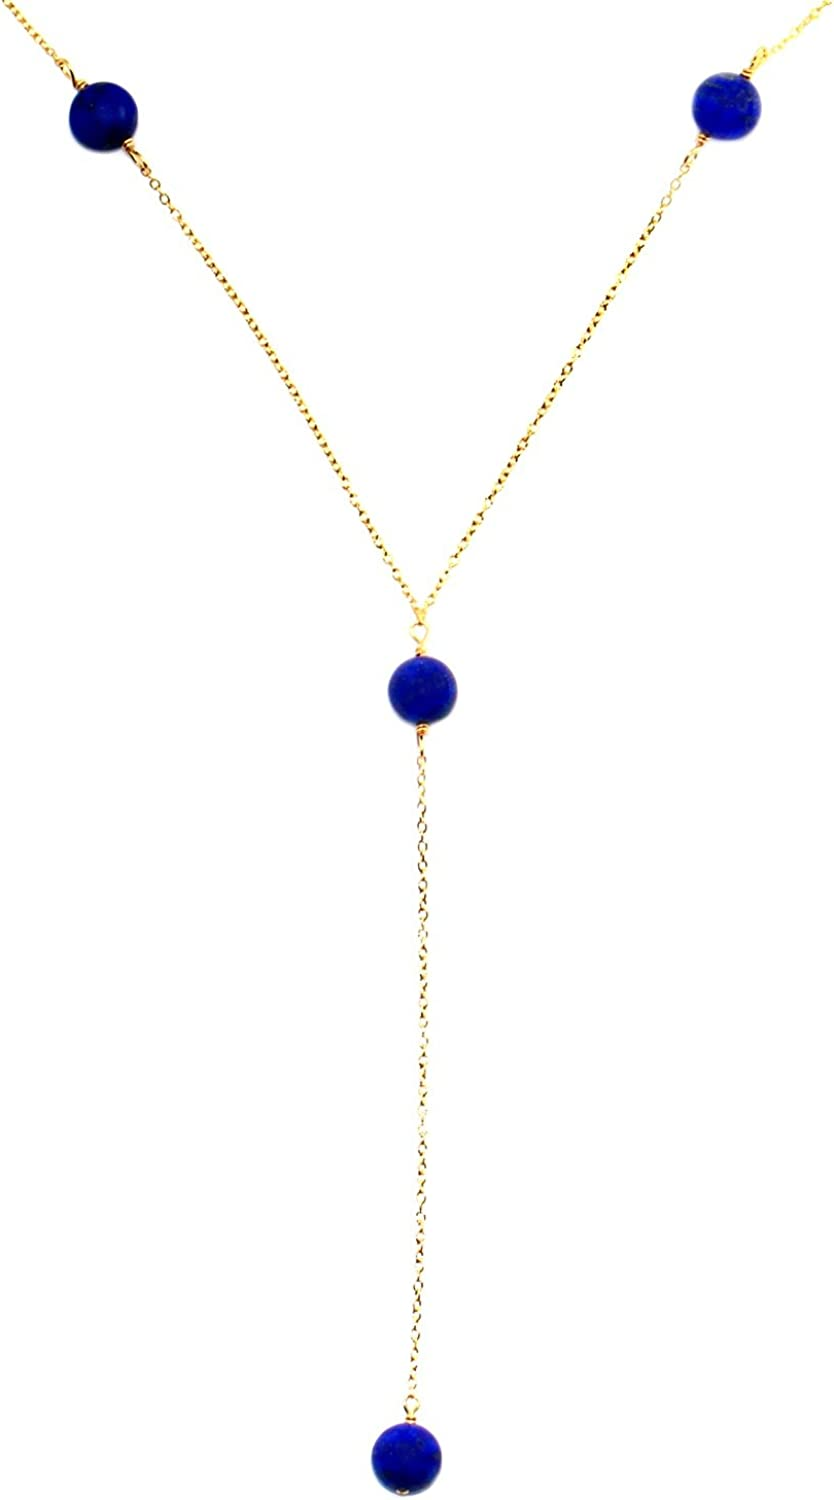 Handmade 14-kt Gold-FilledBrass Y Necklace with 8mm Beads, 20